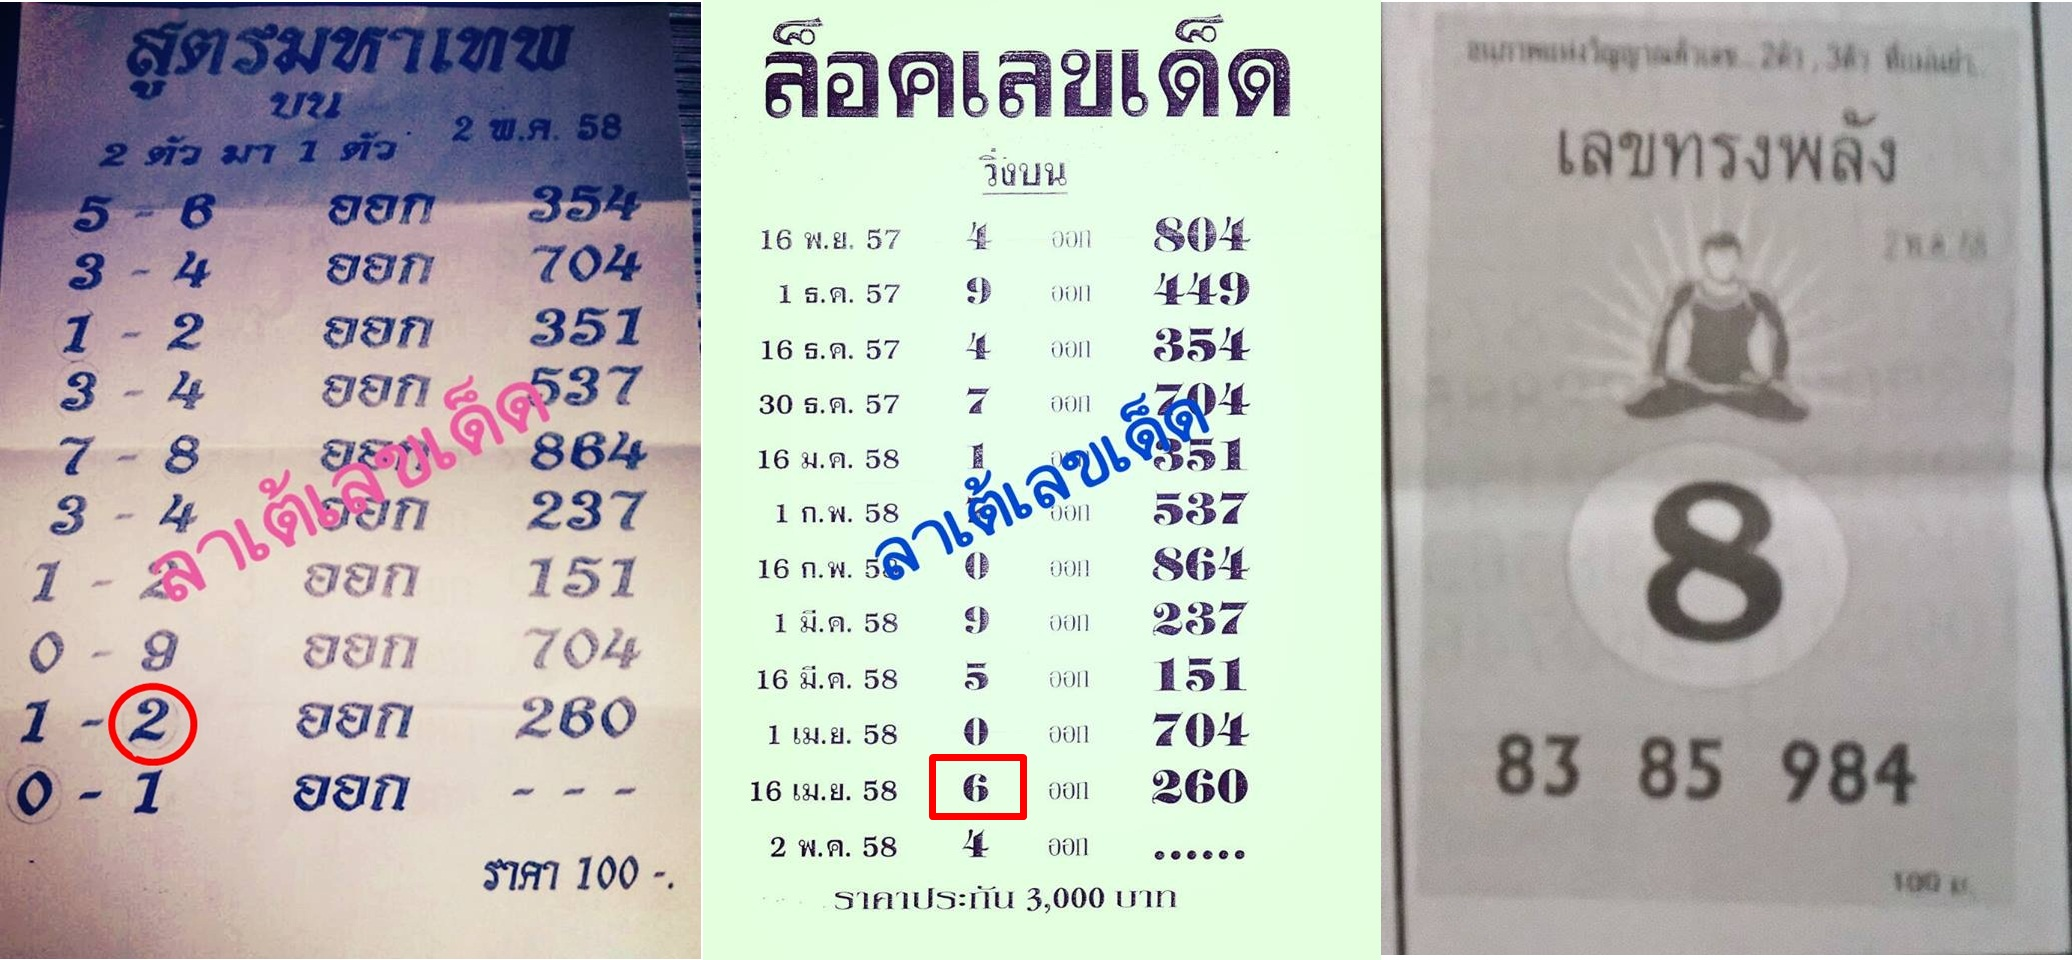 2.5.2015 All About Thai Lotto Tips - Page 6 Fsp19